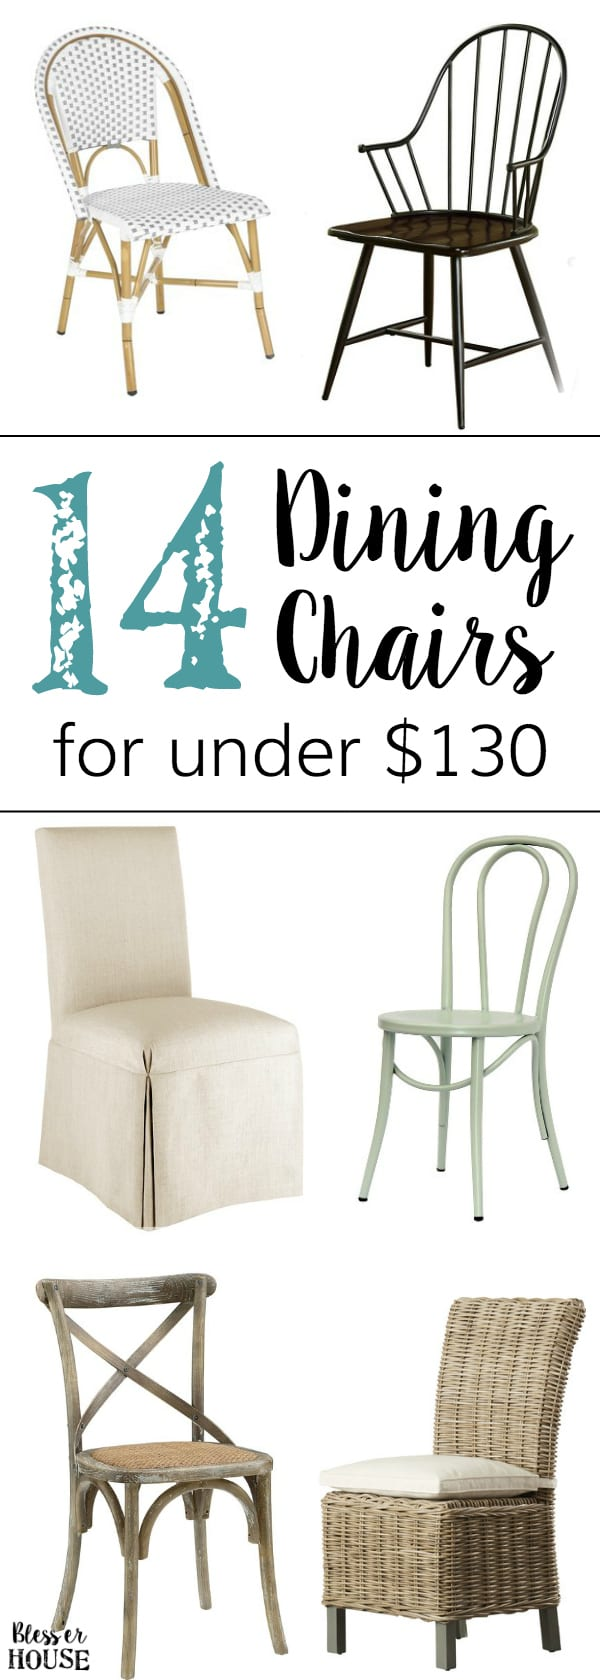 14 Dining Chairs For A Small Budget | Blesserhouse.com   A Home Decor  Shopping